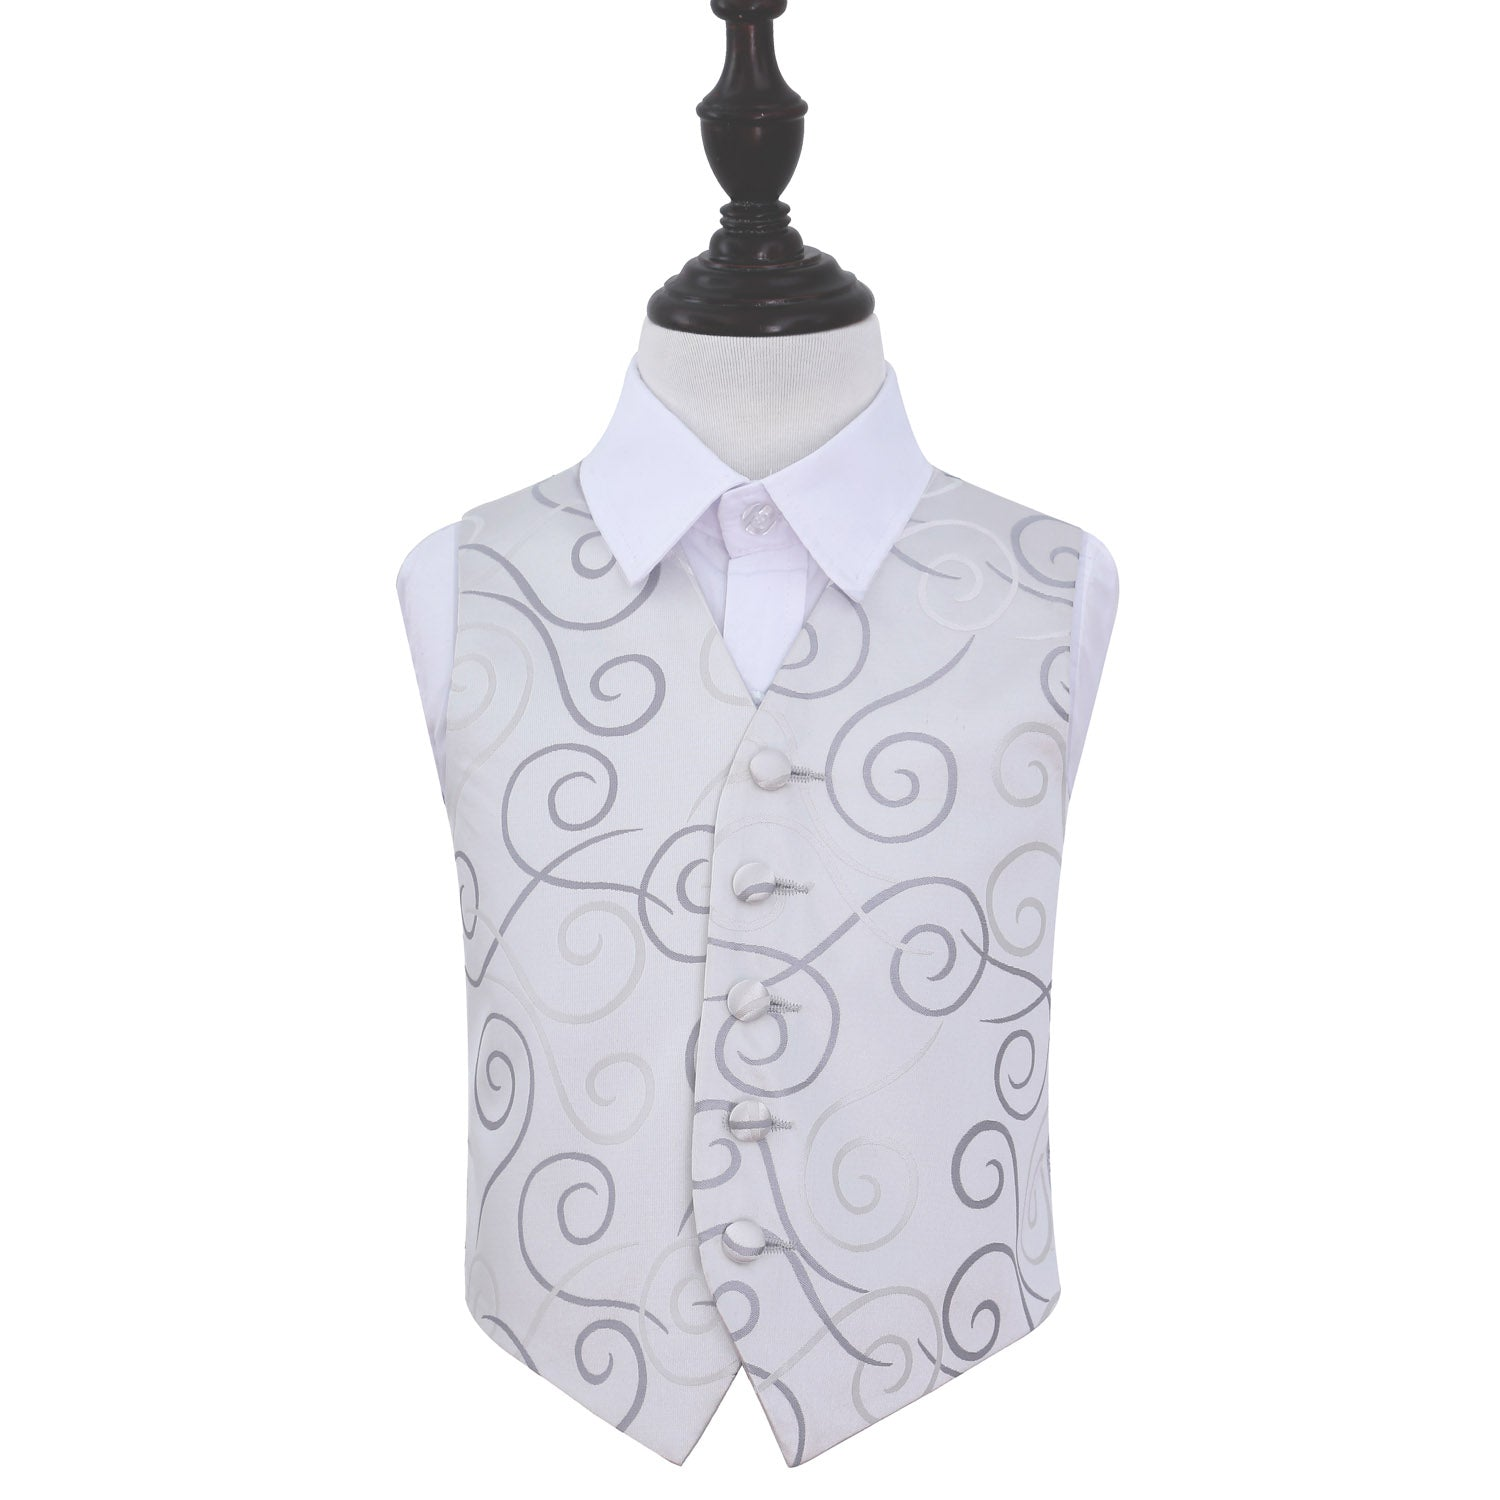 Scroll Waistcoat - Boys - Silver, 30', Clothing by Low Cost Gifts